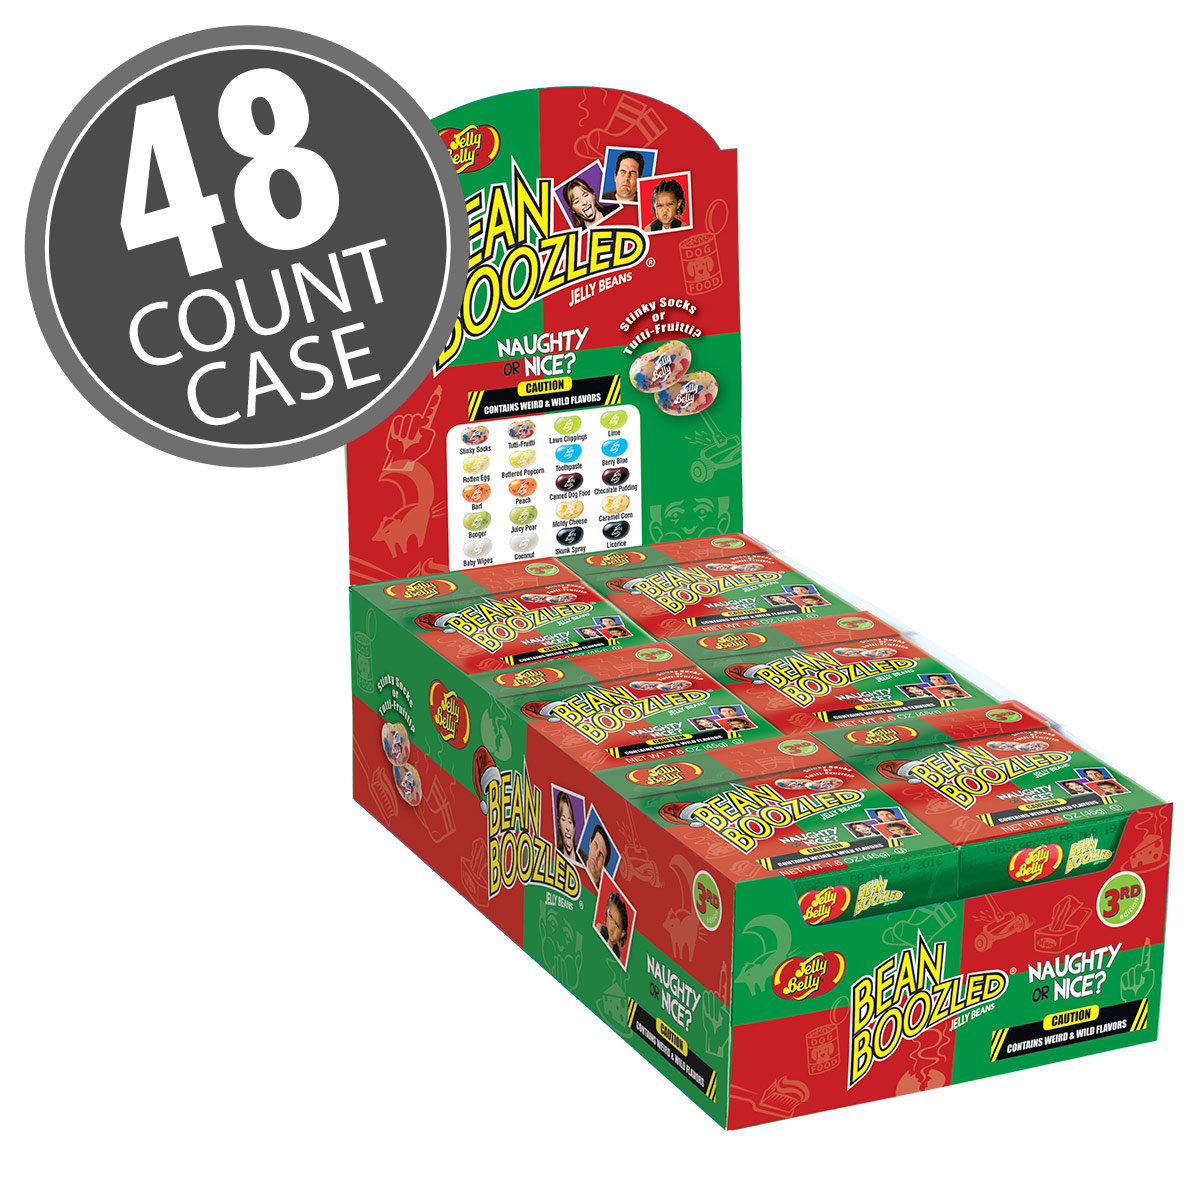 BeanBoozled Naughty or Nice Jelly Beans - 1.6 oz Box - 48 Count Case